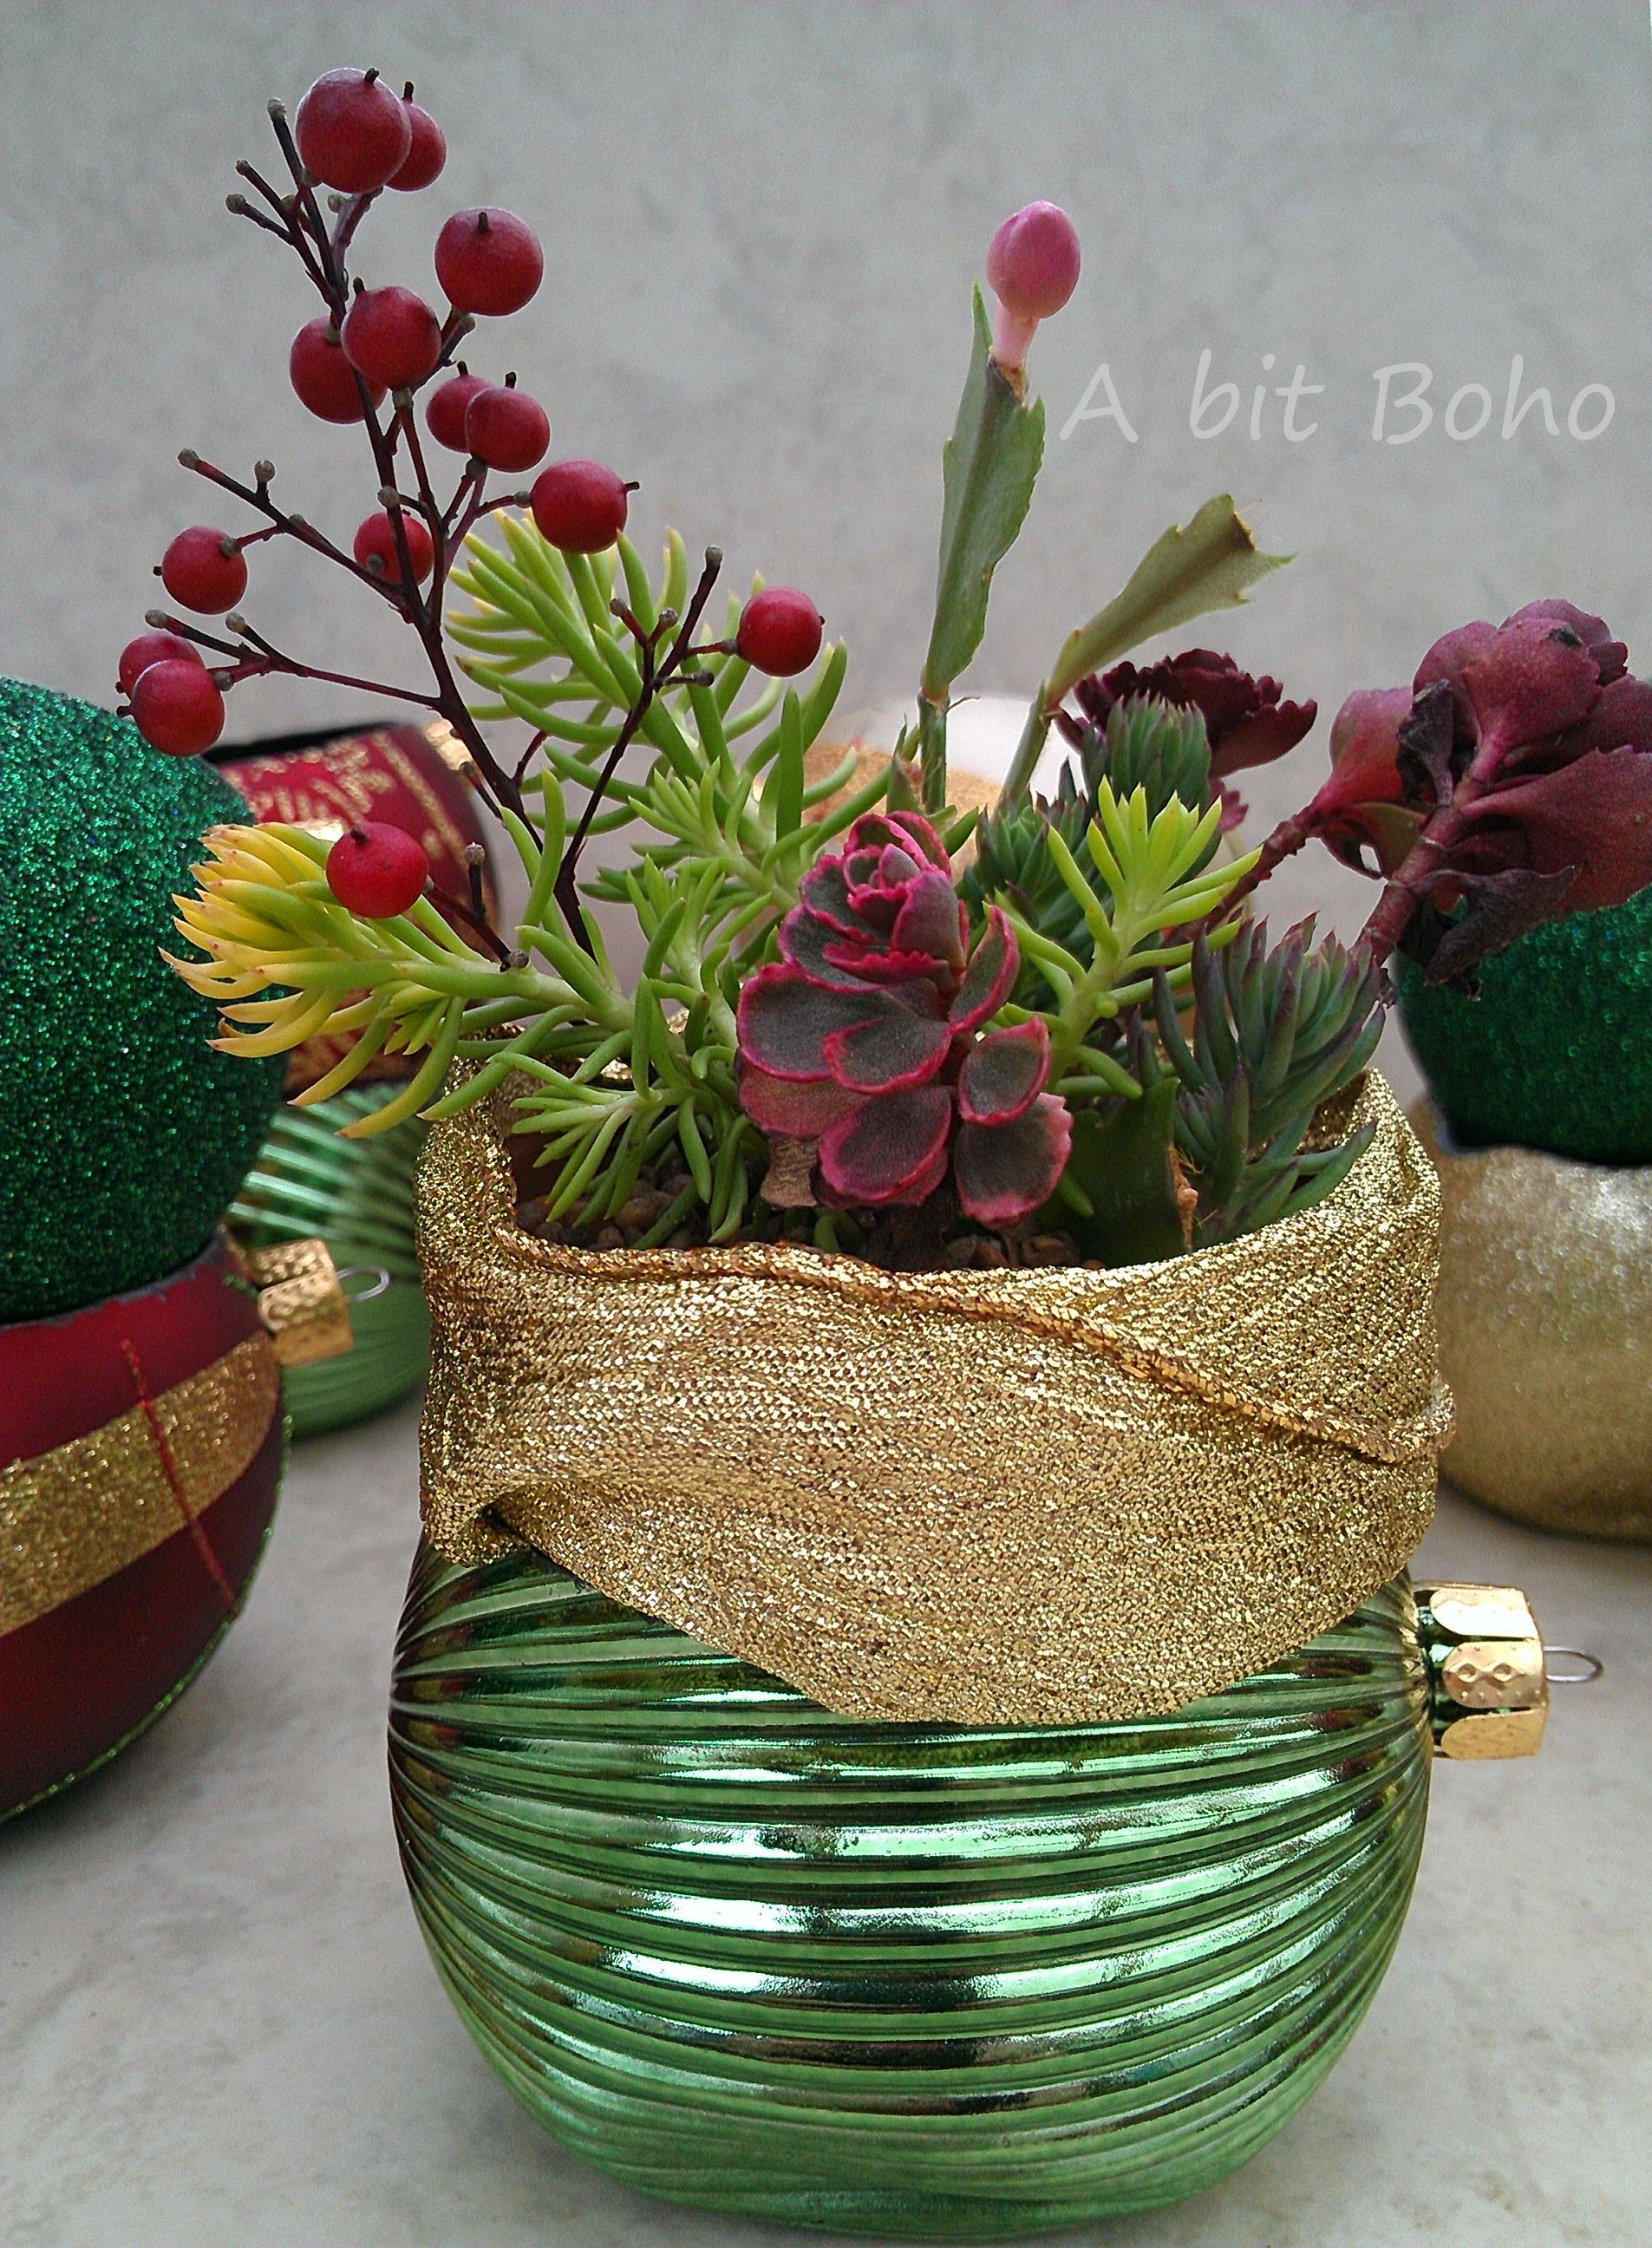 Homemade Christmas Ornament Mini Succulent Garden - A bit Boho